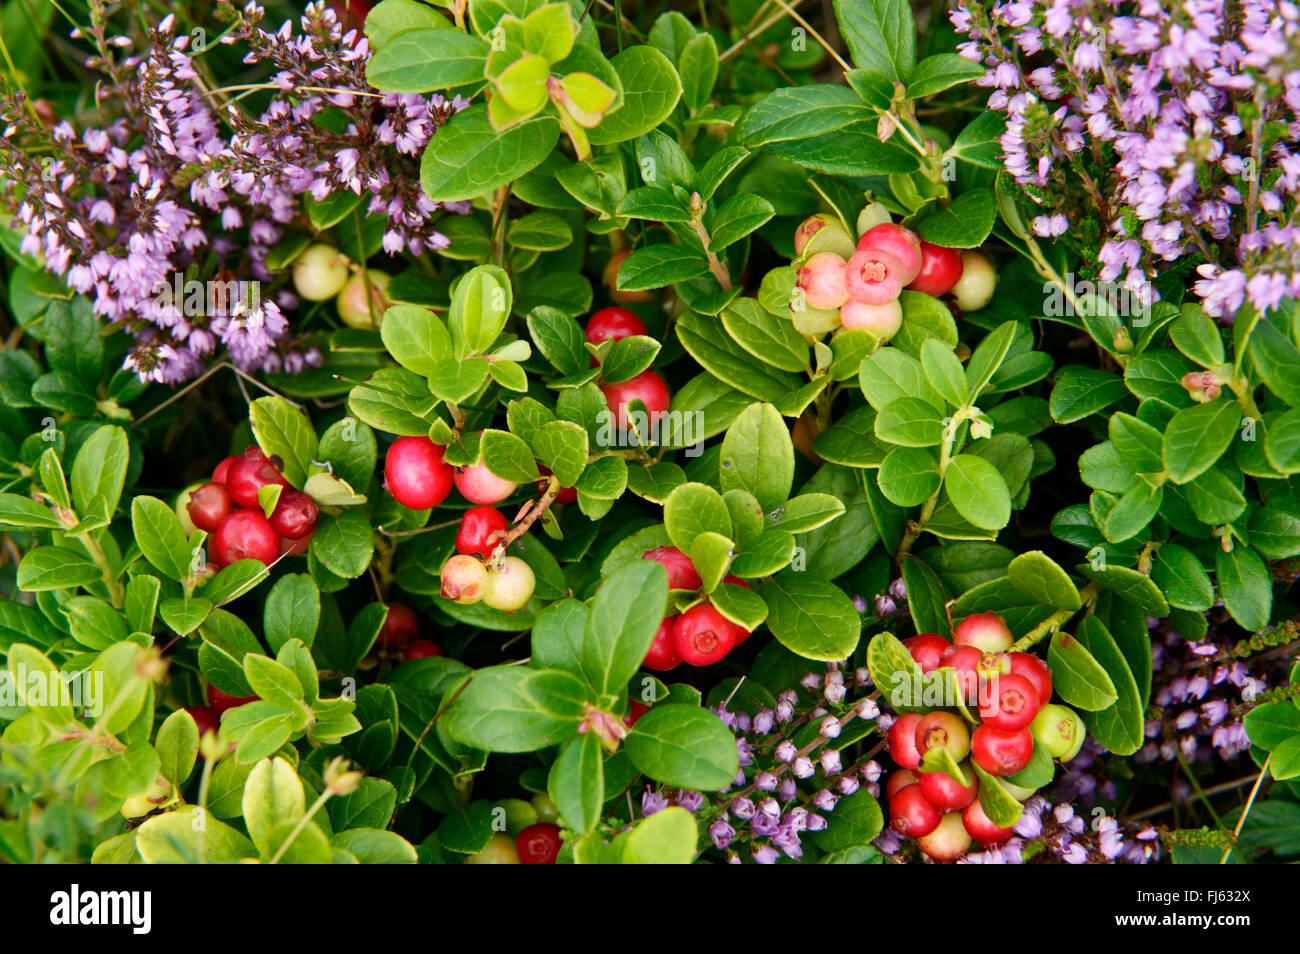 cowberry, foxberry, lingonberry, mountain cranberry (Vaccinium vitis-idaea), fruiting among blooming heath, Germany, - Stock Image